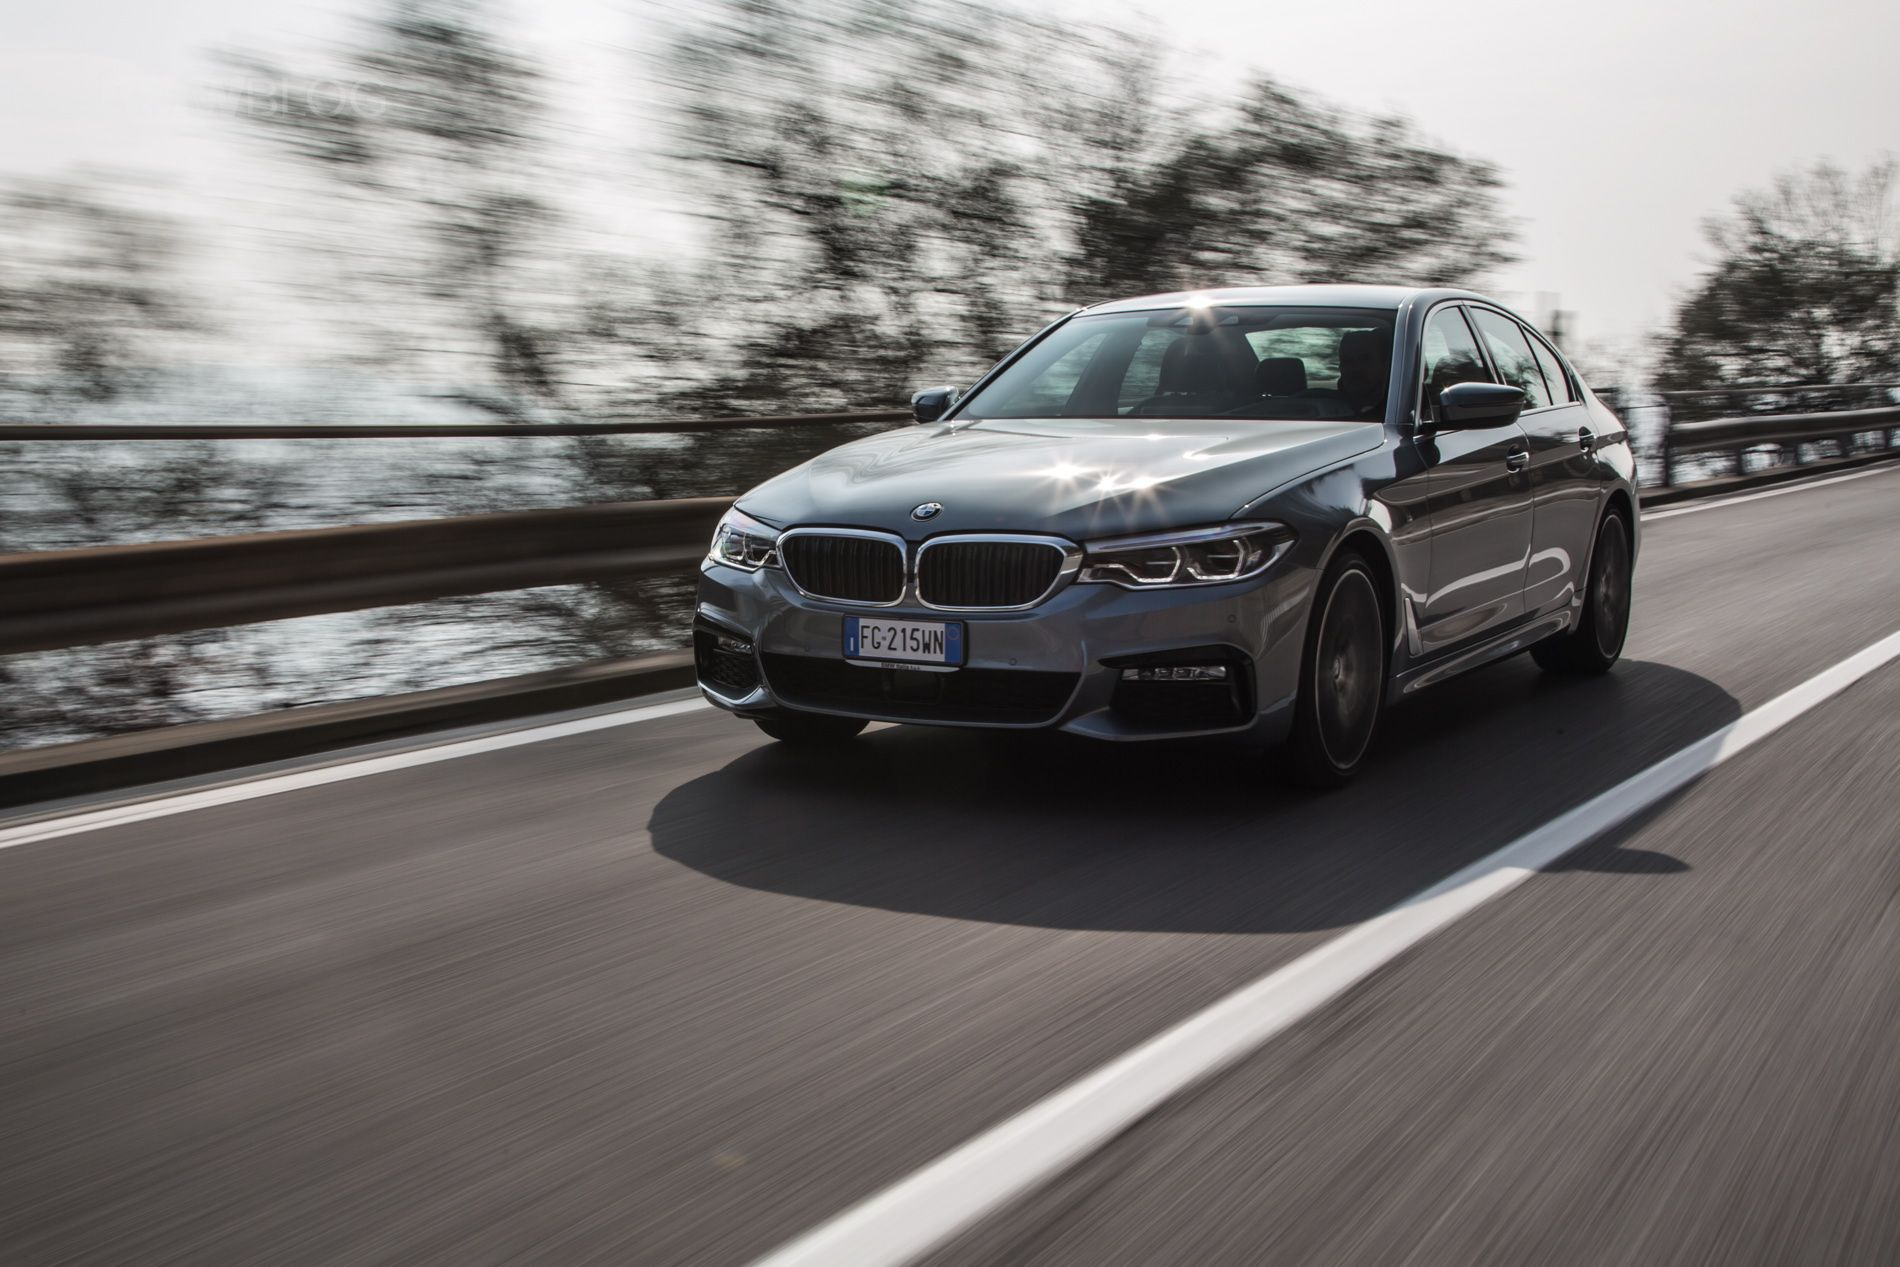 BMW 5 Series vs Mercedes E-Class va Jaguar XF vs Volvo S90 - http://www.bmwblog.com/2017/05/19/bmw-5-series-vs-mercedes-e-class-va-jaguar-xf-vs-volvo-s90/